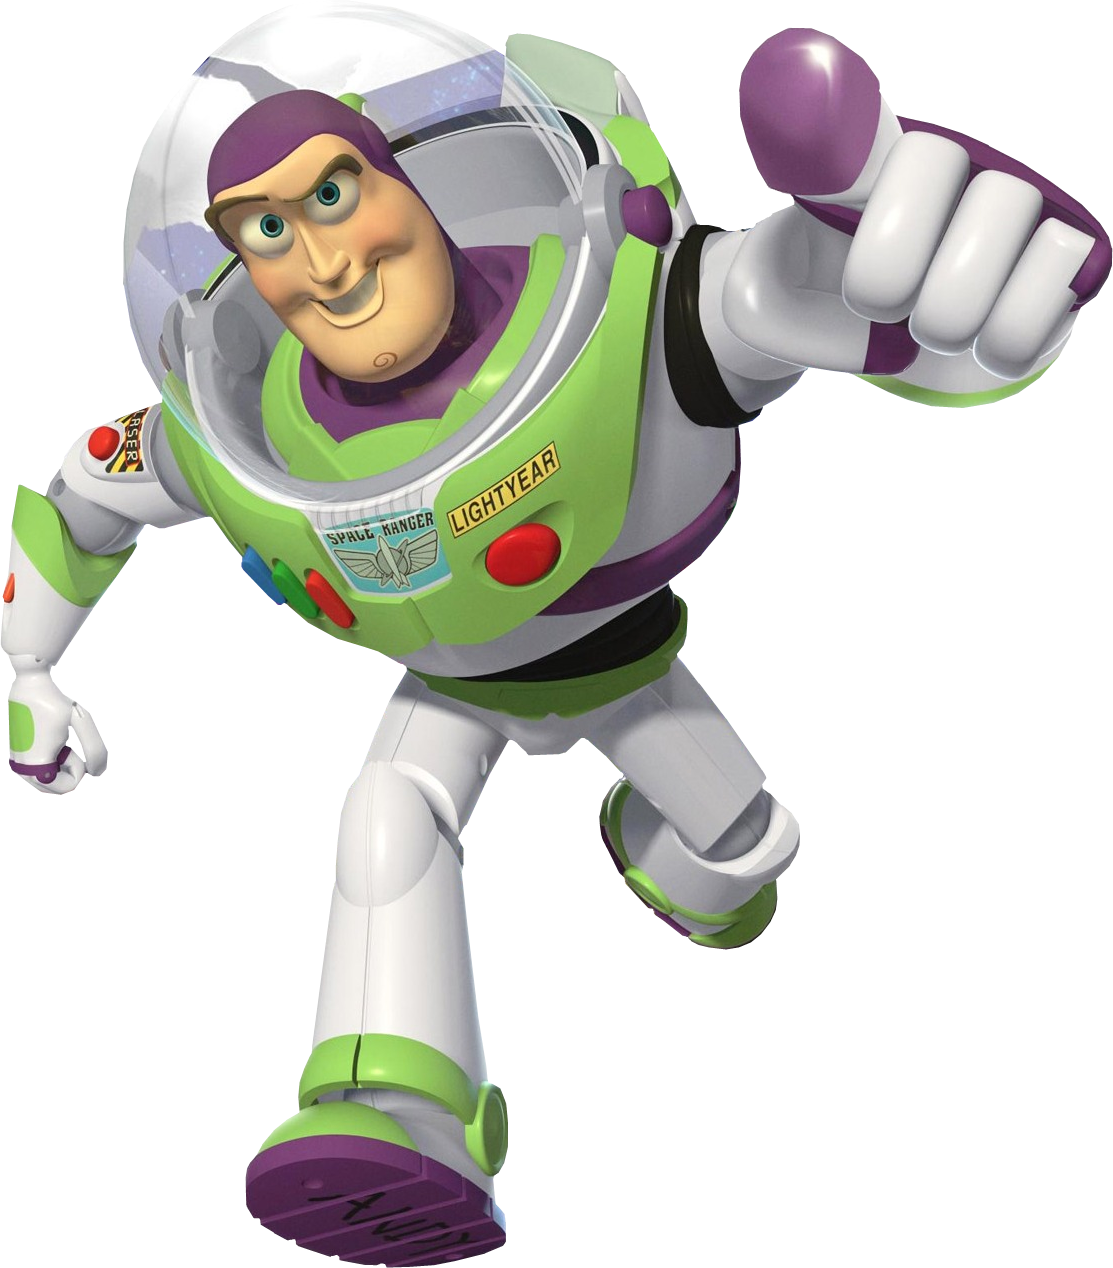 Buzz light year png. Lightyear free download mart